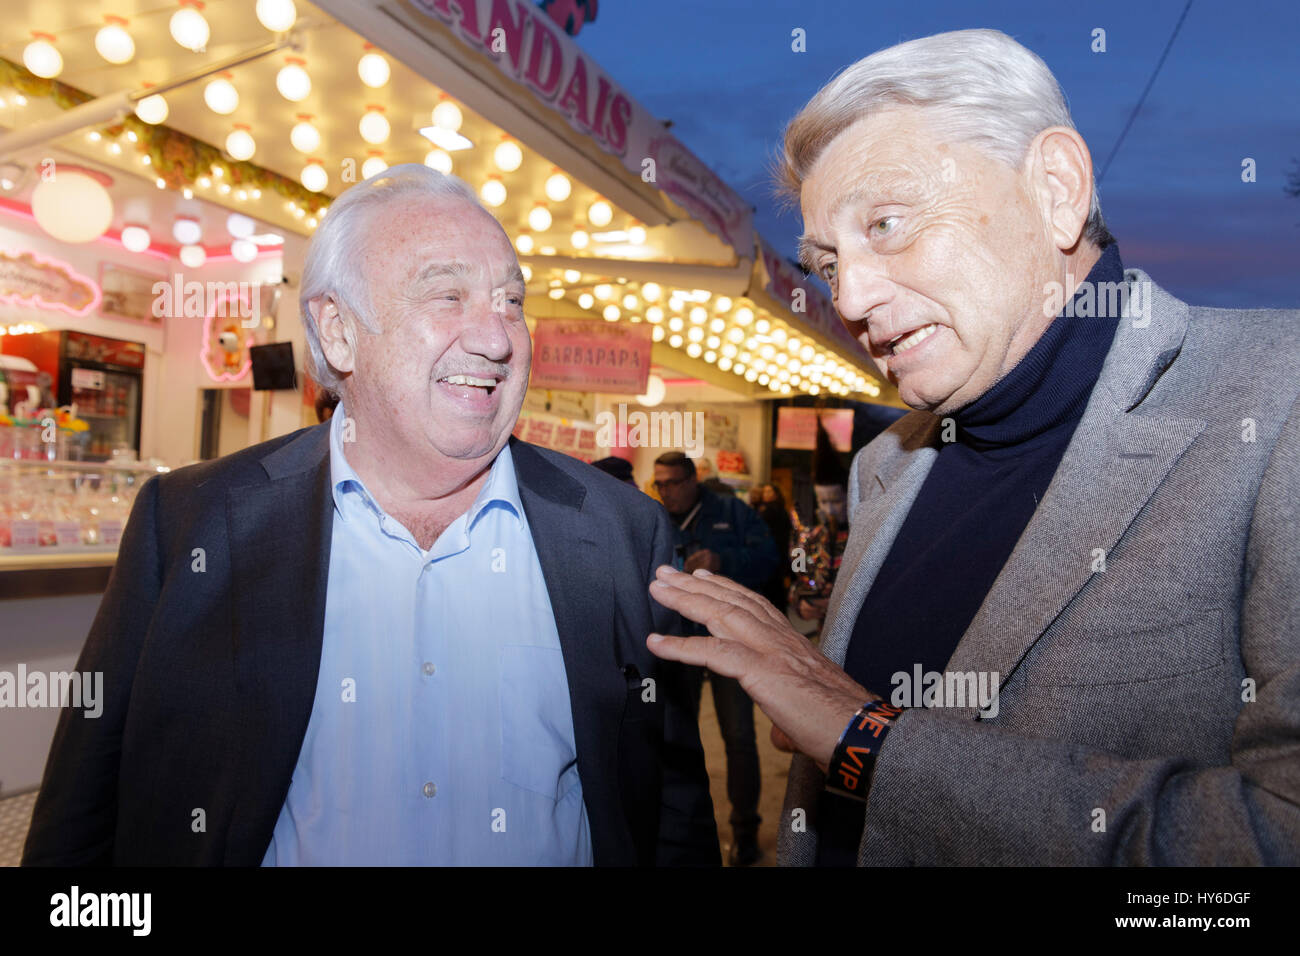 Marcel Campion and Alain Madelin attend at Opening evening of the 2017 Throne Fair for the benefit of the Association Stock Photo